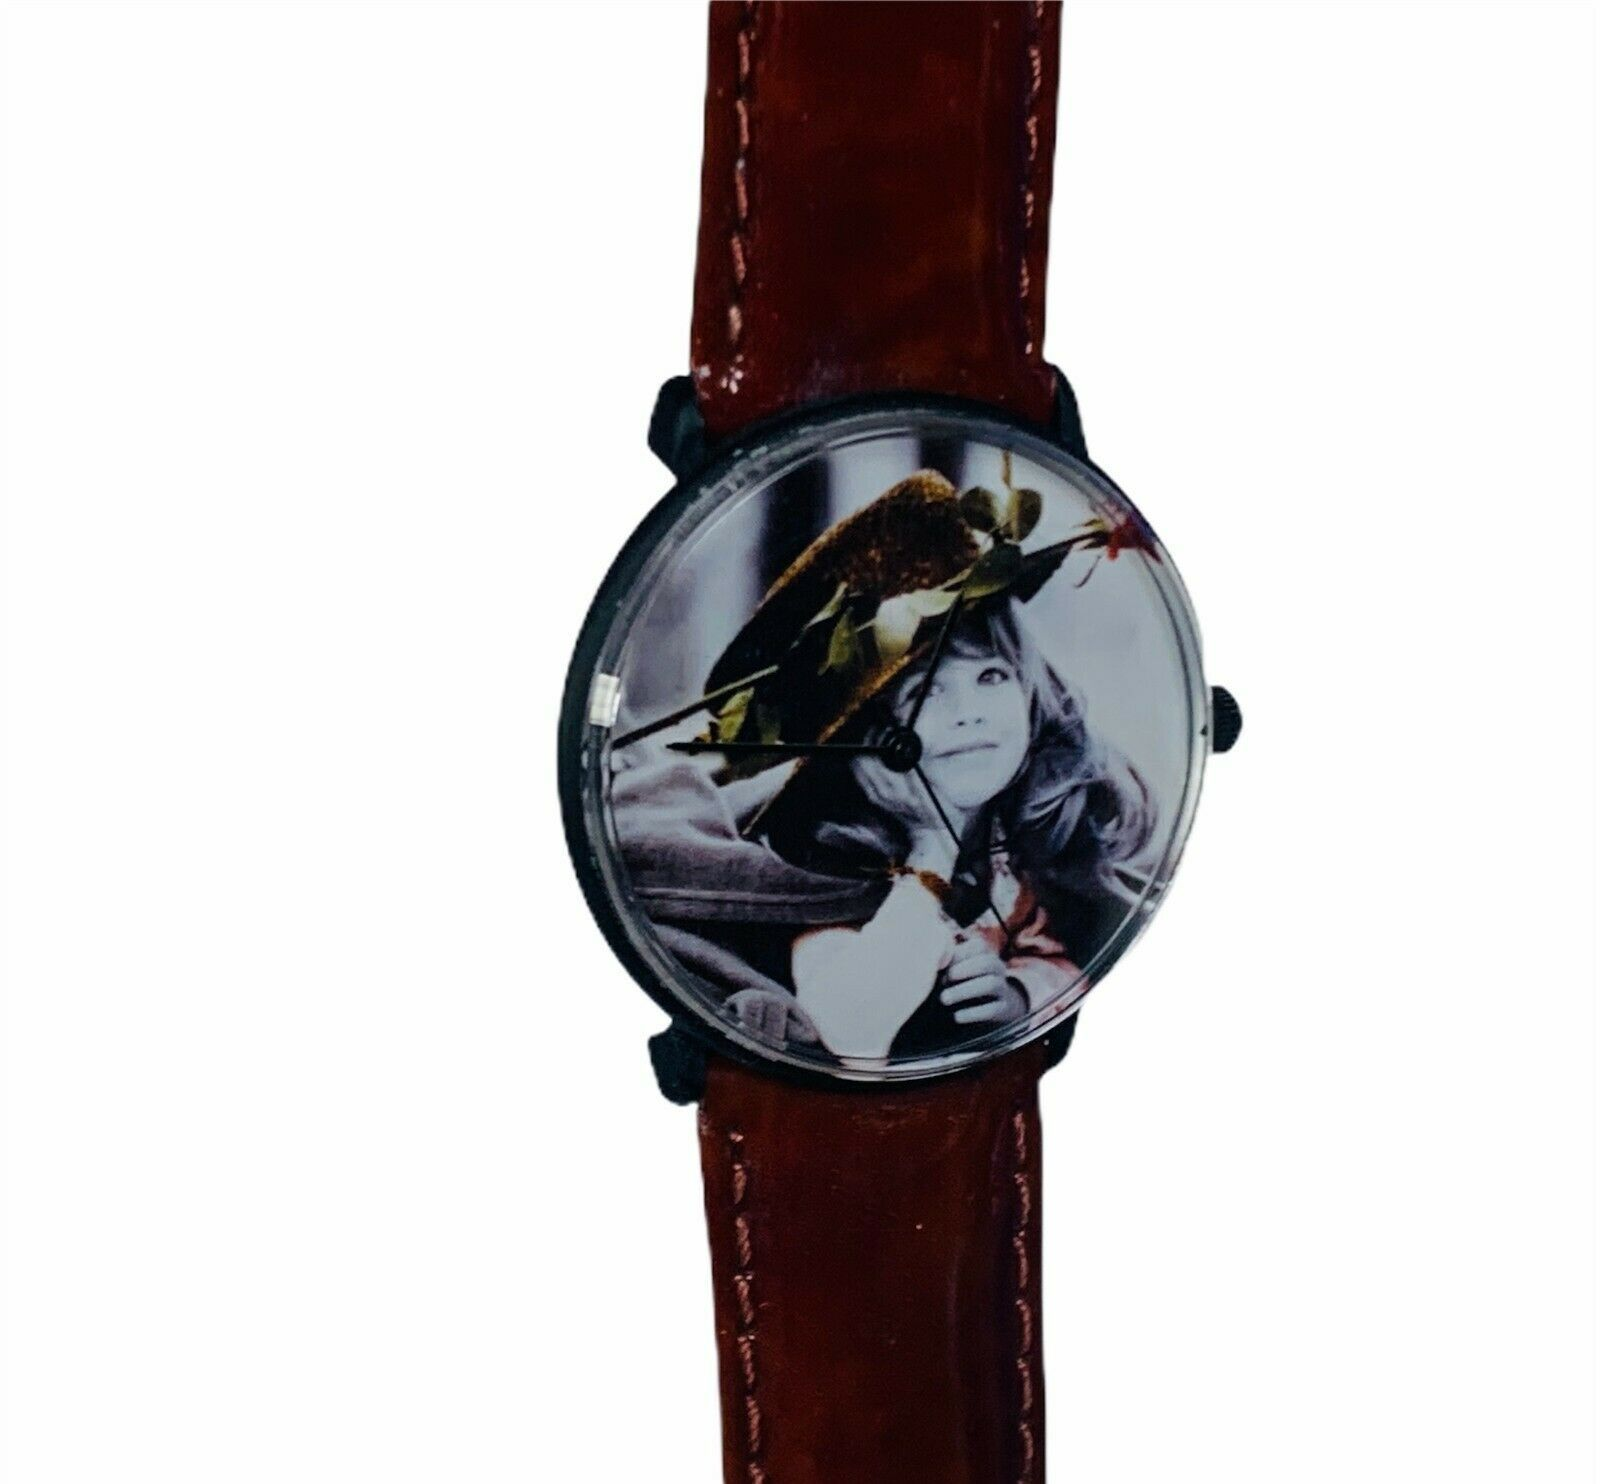 Primary image for Pretty as Picture Kim Anderson figurine vtg Classico wristwatch watch girl hat